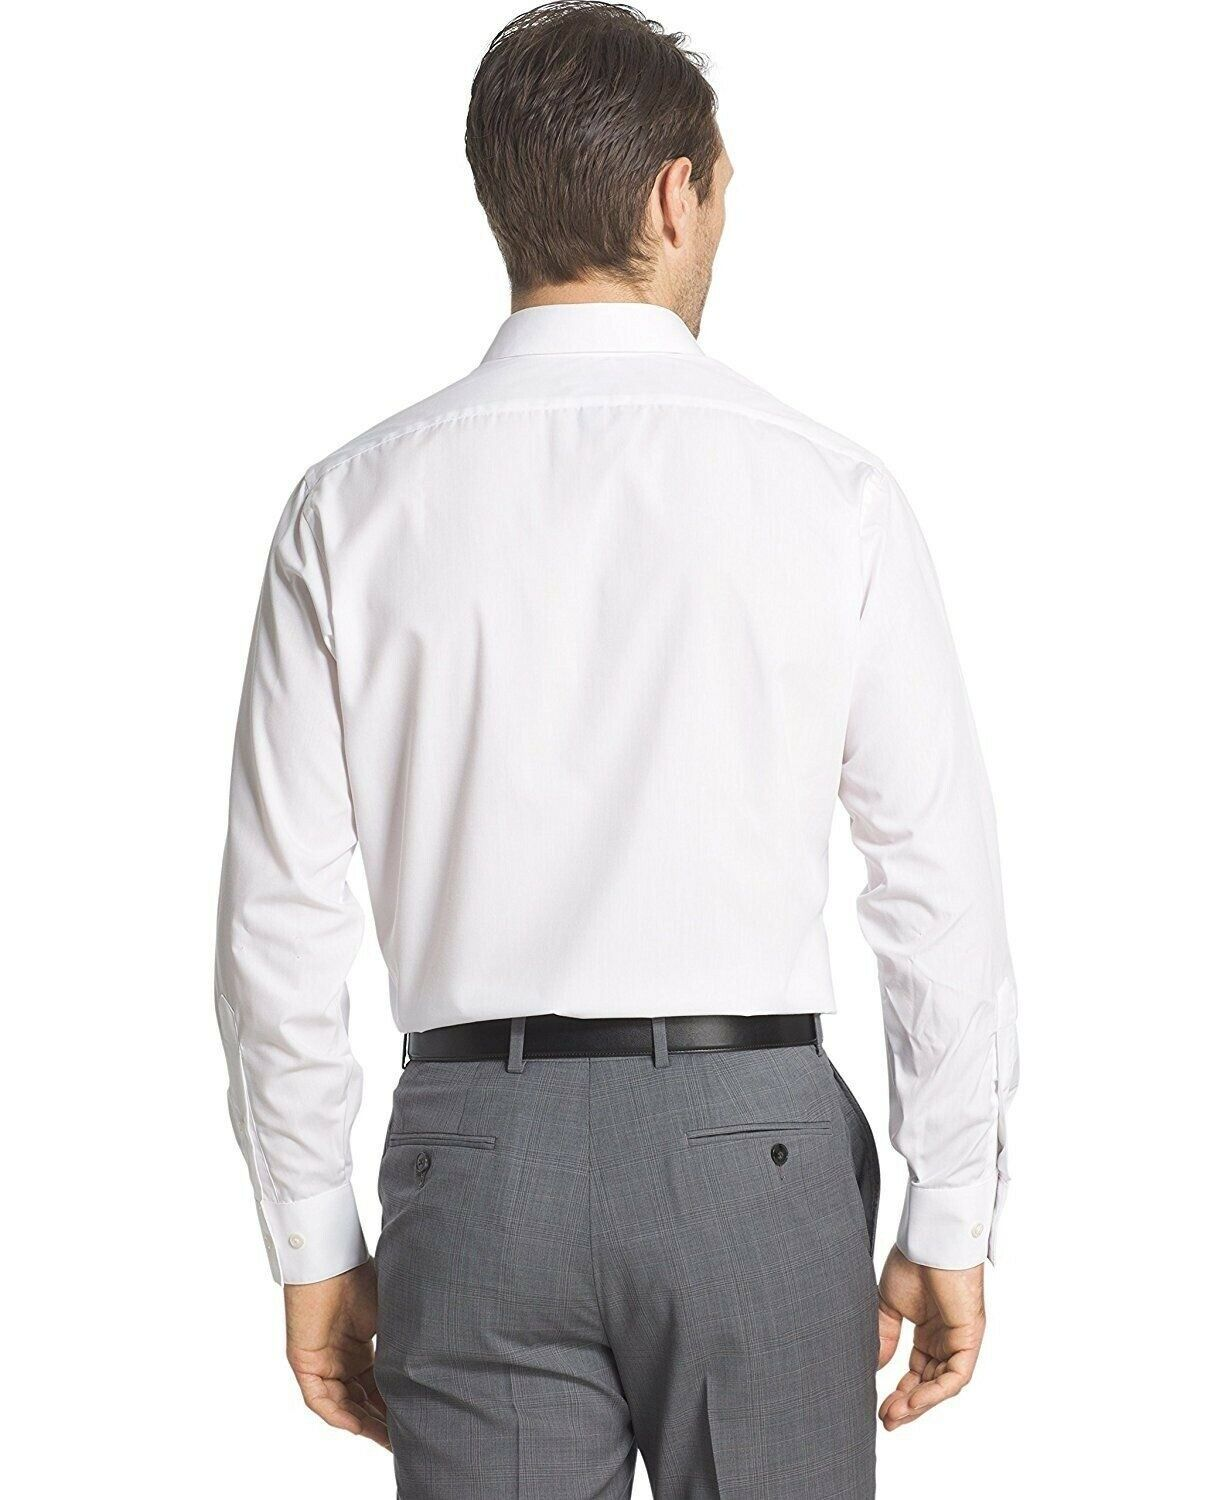 BERLIONI-ITALY-MEN-039-S-PRIME-FRENCH-CONVERTIBLE-CUFF-SOLID-DRESS-SHIRT-WHITE thumbnail 8